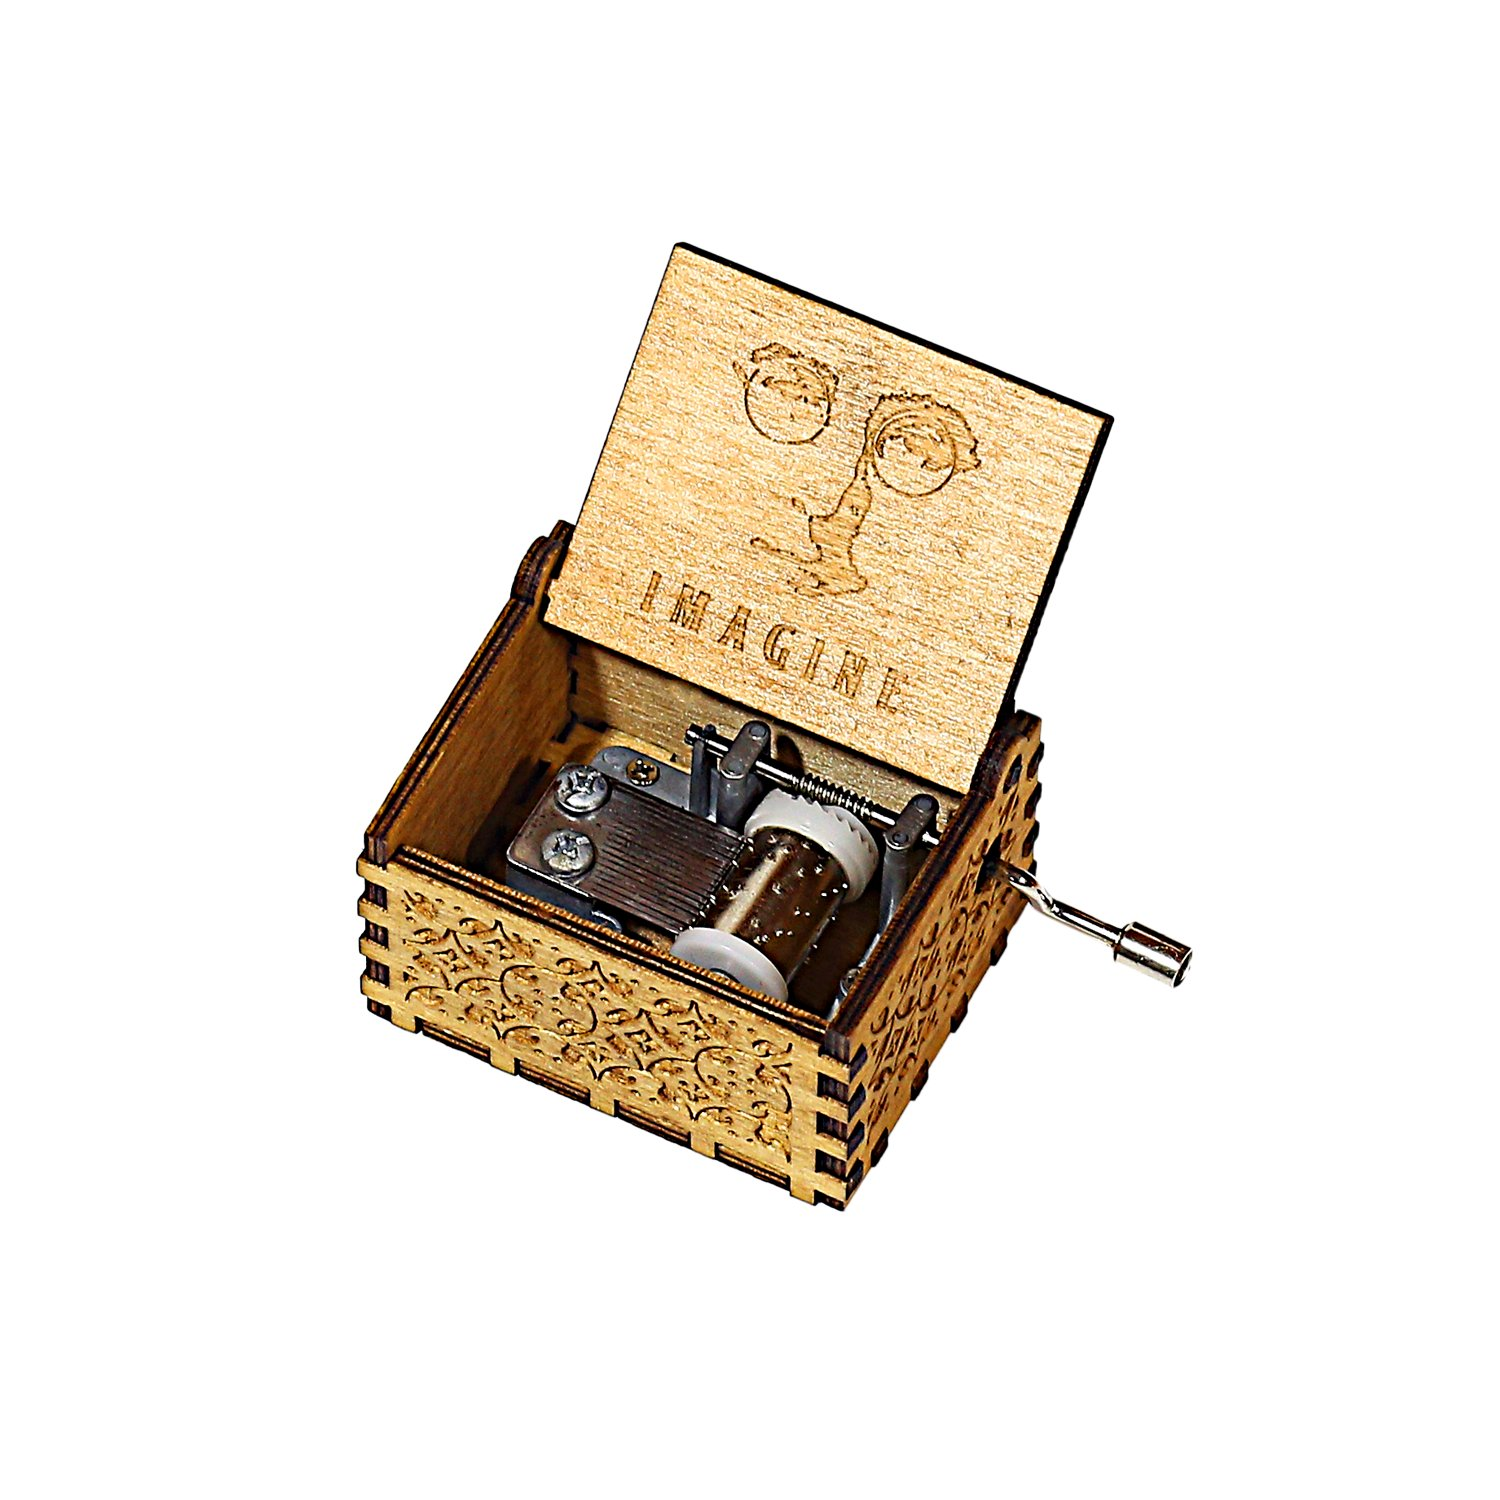 HOSALA Personalizable Music Box Handmade Engraved Wooden (Wood, Castle in The Sky) IS88 -02